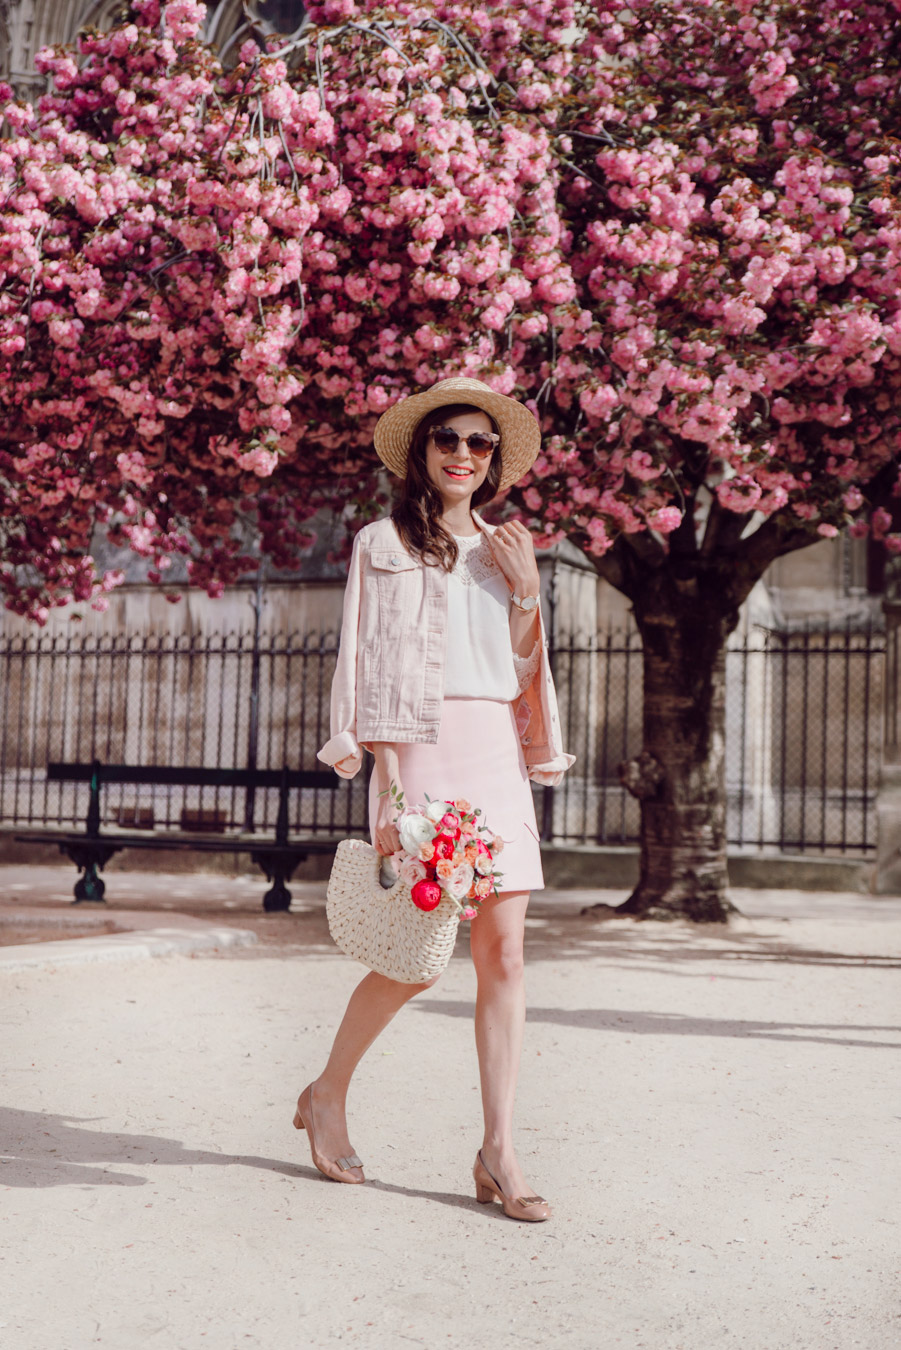 Blog-Mode-And-The-City-Looks-Notre-Dame-arbre-en-fleurs-6